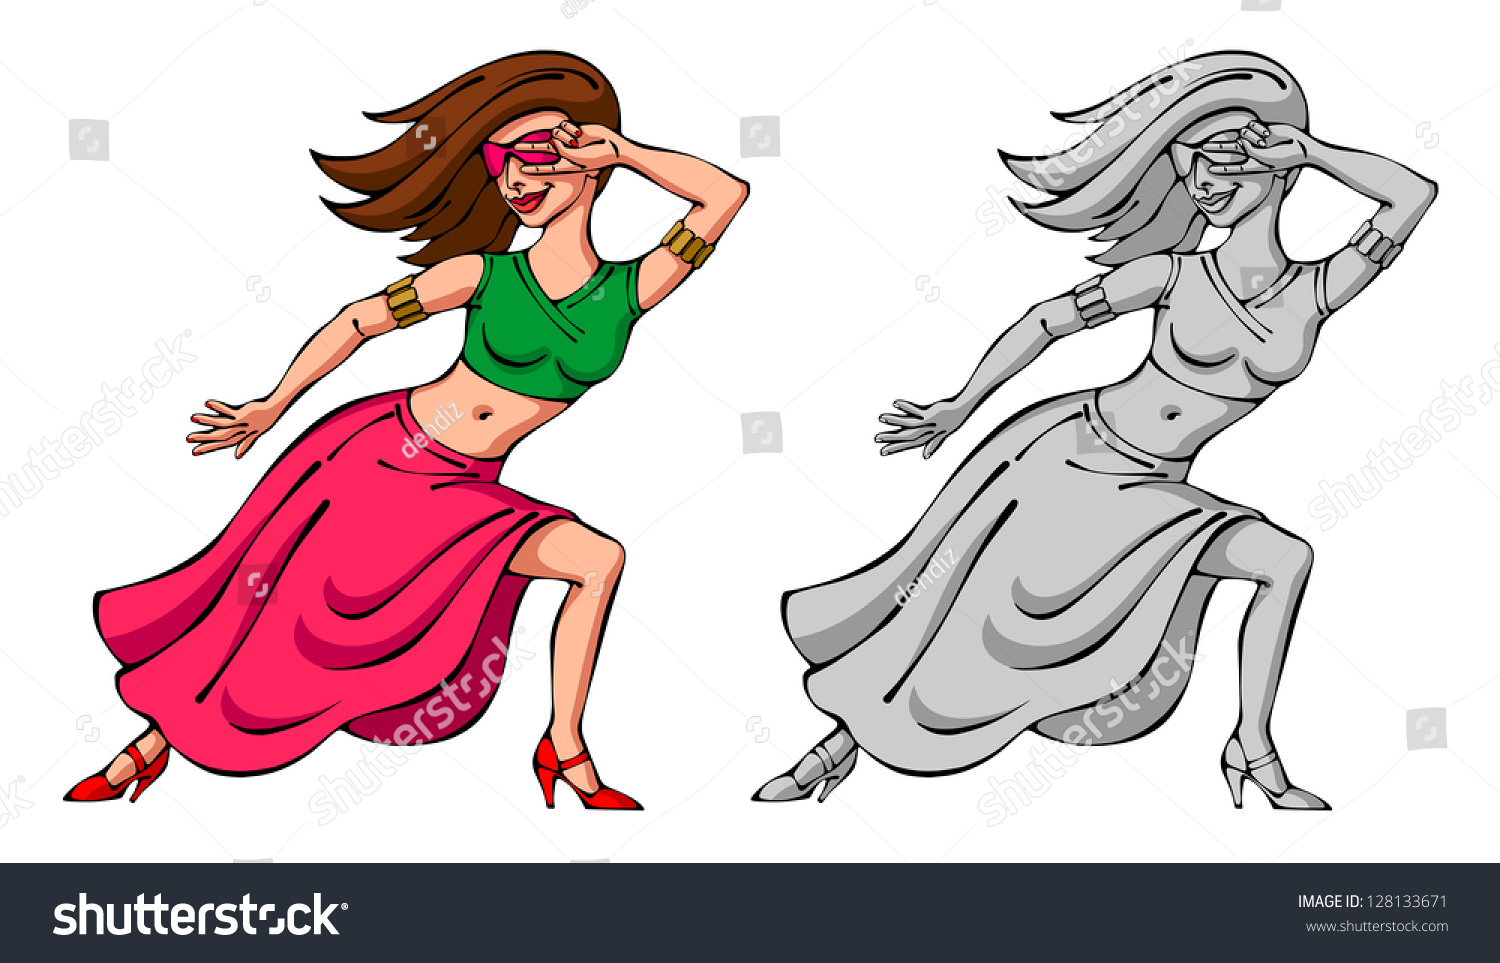 Cartoon Characters Dancing : Dancing girl character dancer cartoon stock illustration